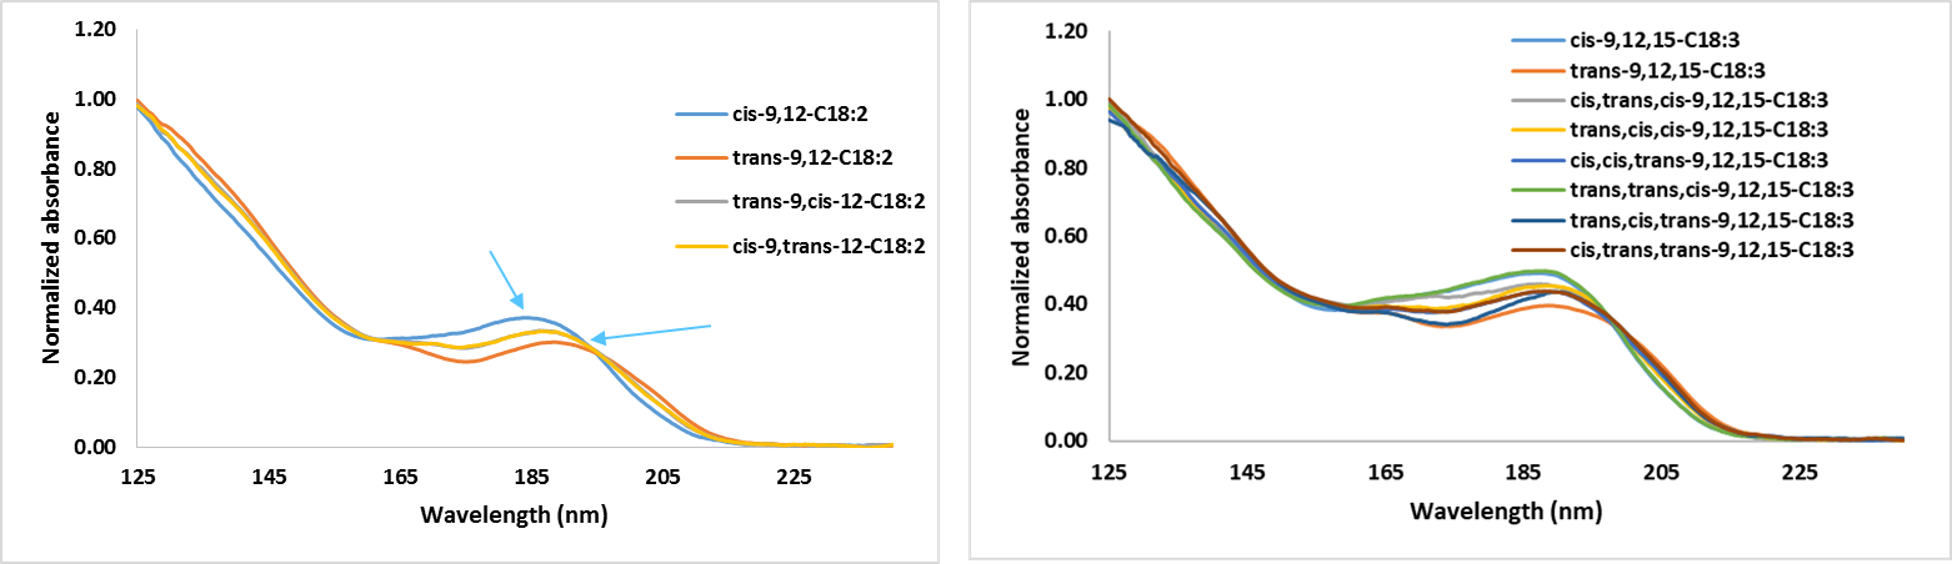 VUV spectra allow cis/trans isomer distinction for di-unsaturated (left) and tri-unsaturated (right) FAMEs.